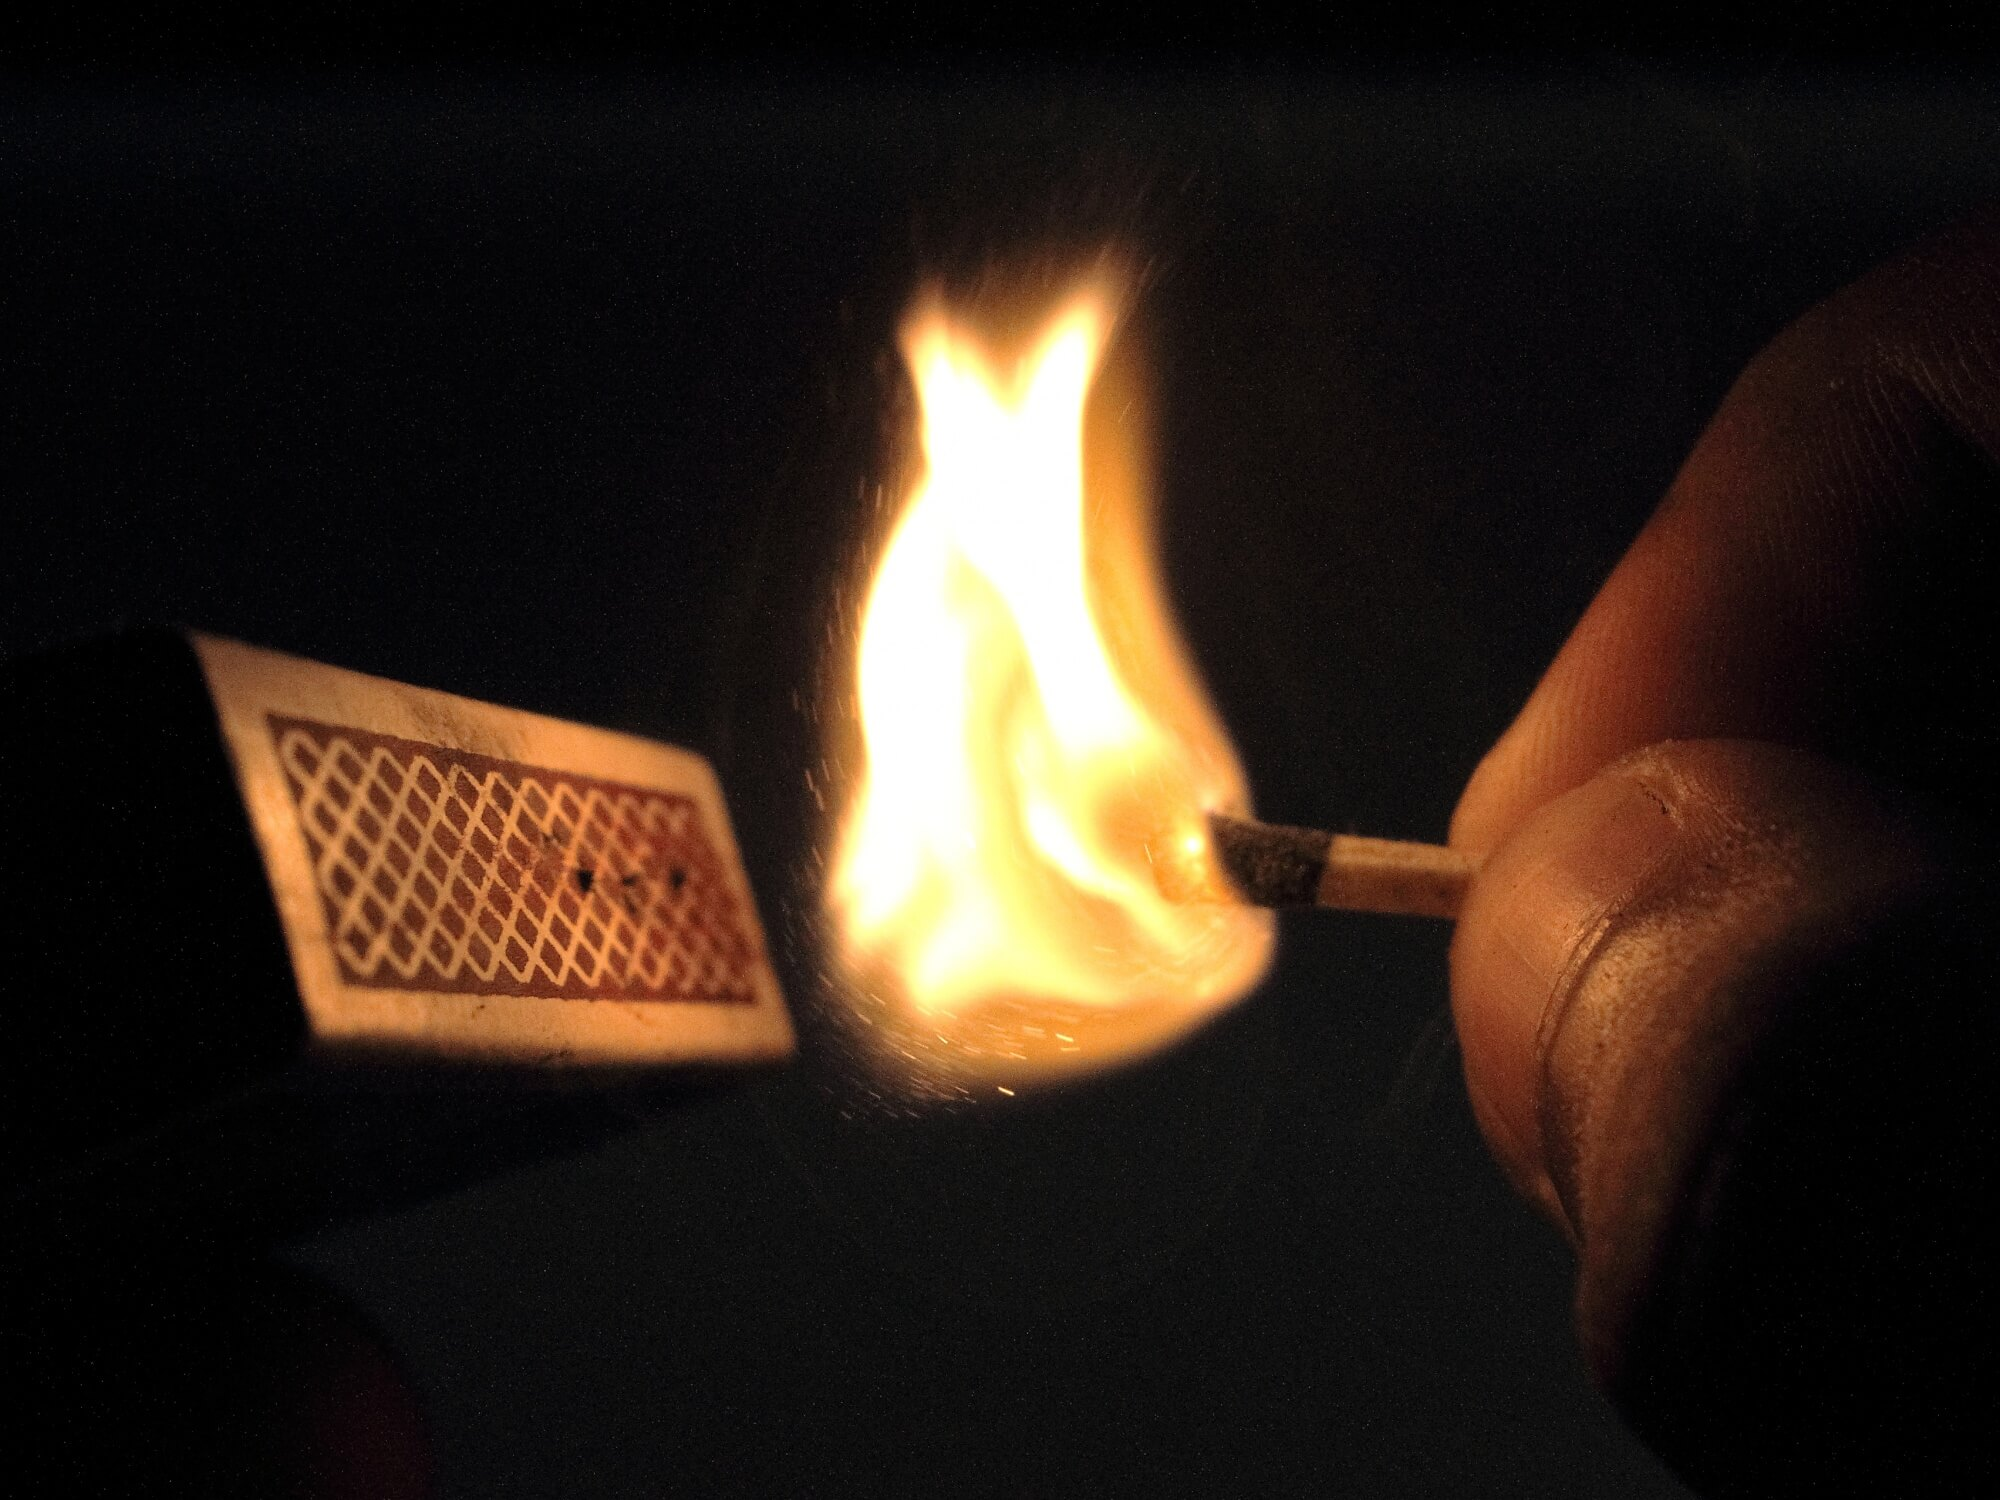 Match_stick_fire-maya.bg